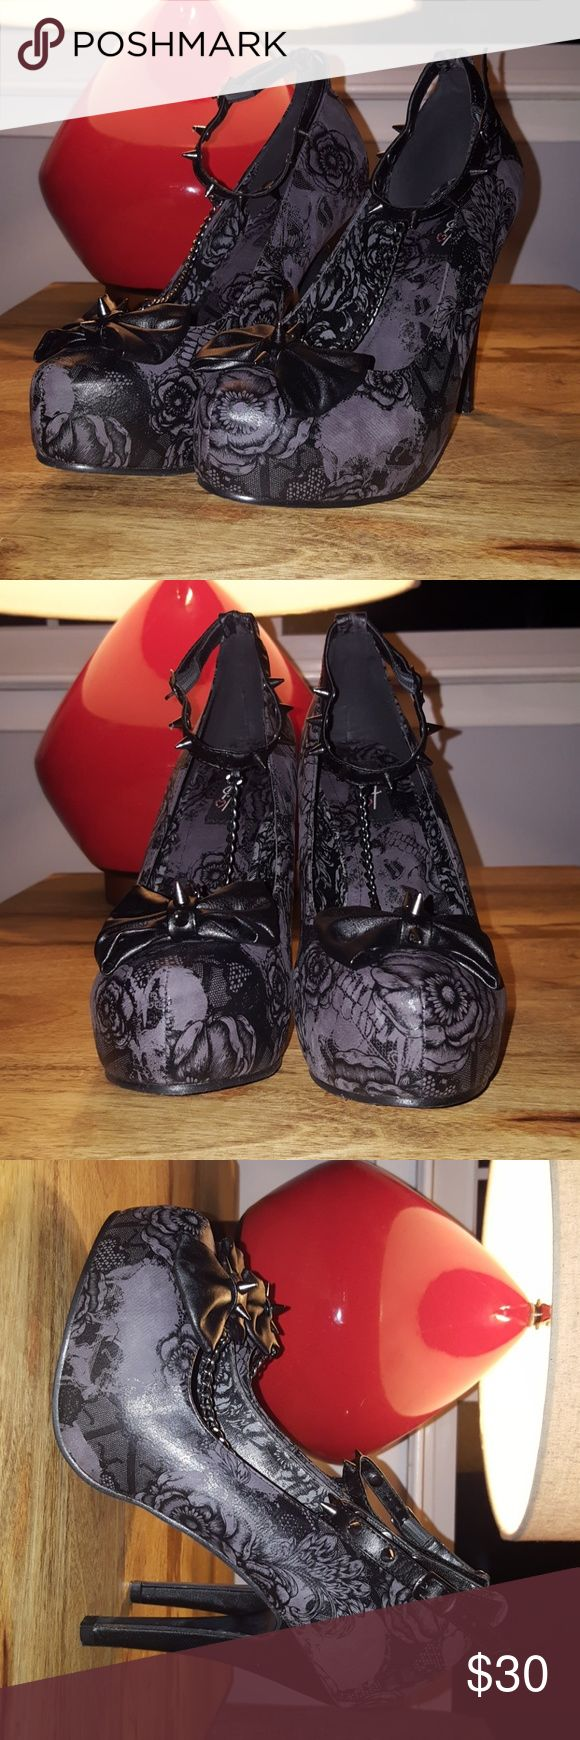 Shotgun Platform Iron Fist Heels Black Iron Fist Heels with a flower pattern and spikes. Worn only once or twice. Iron Fist Shoes Heels